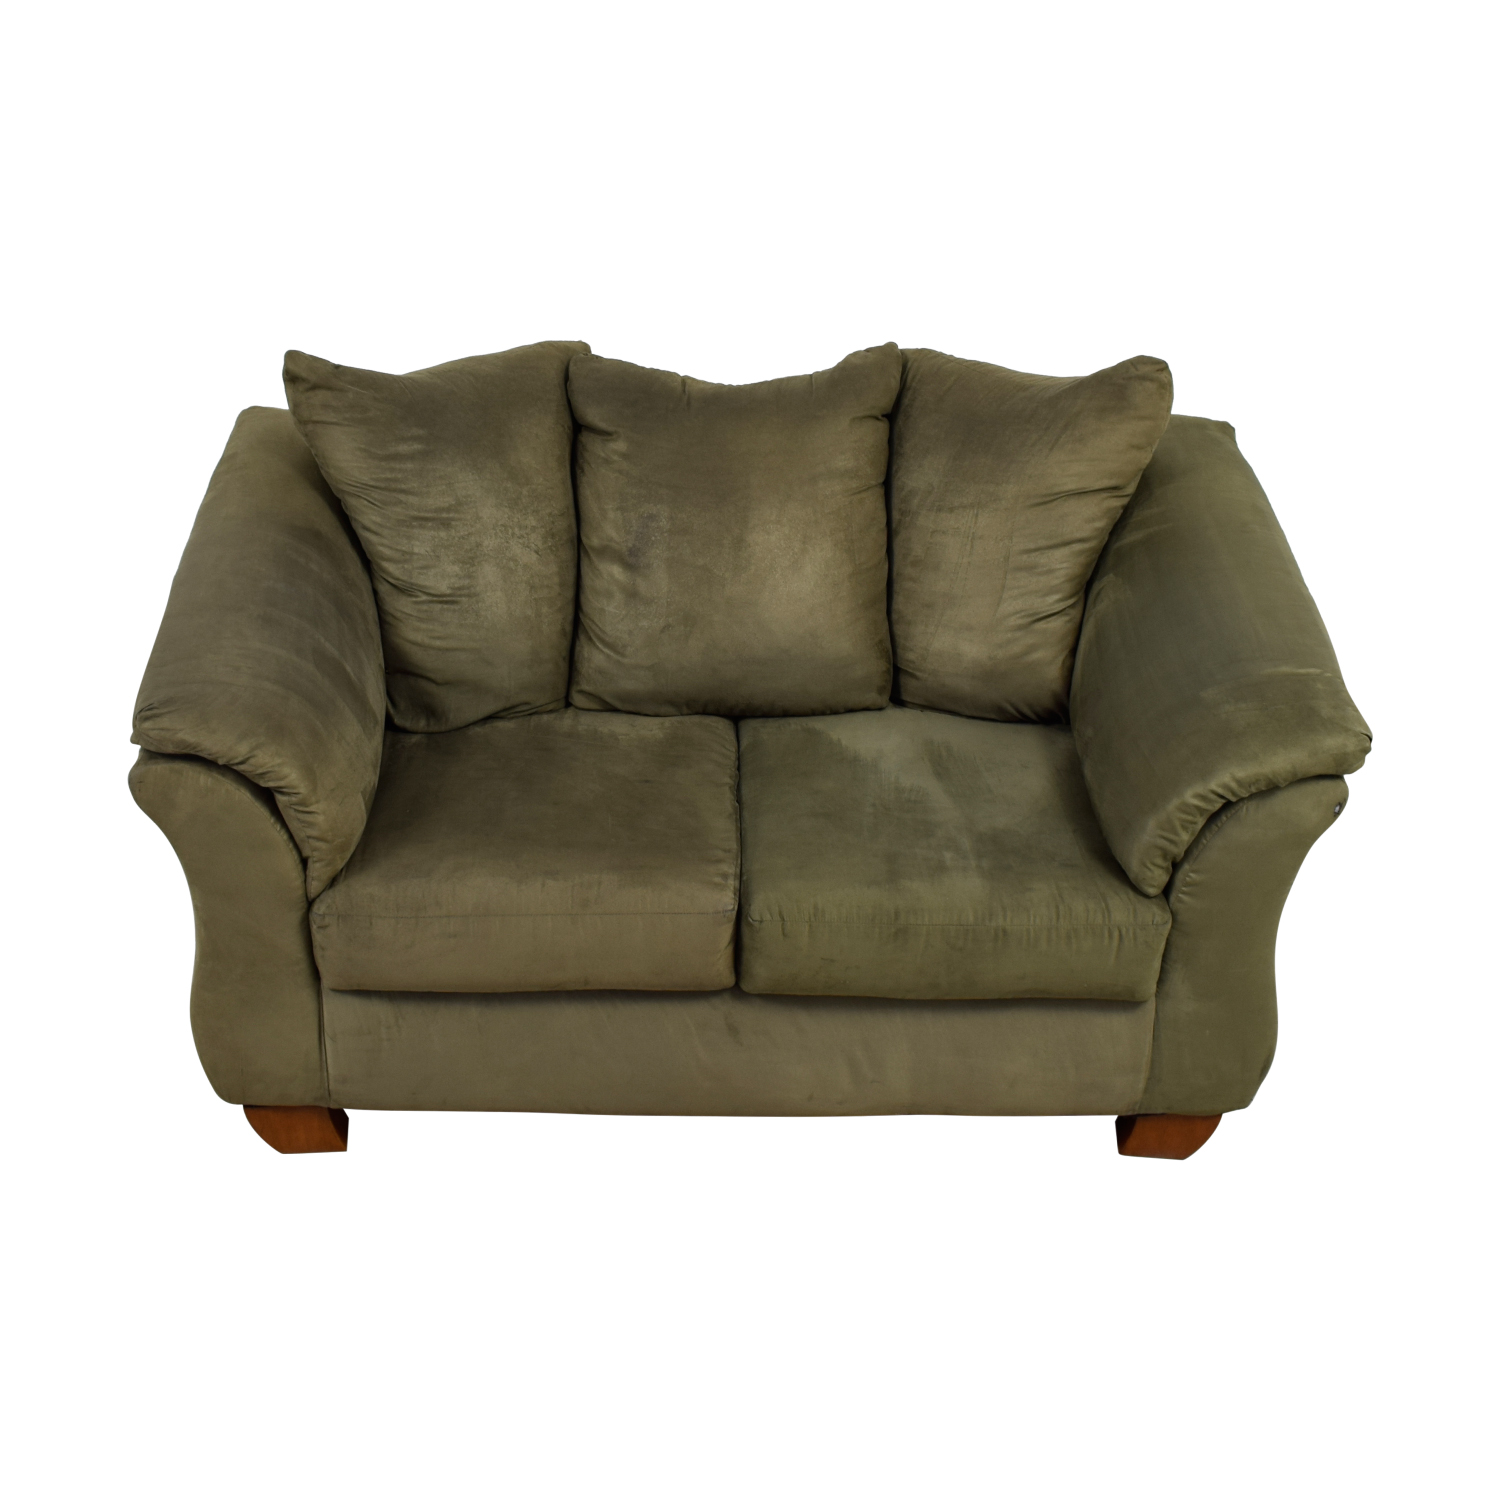 buy  Forest Green Two-Cushion Loveseat online